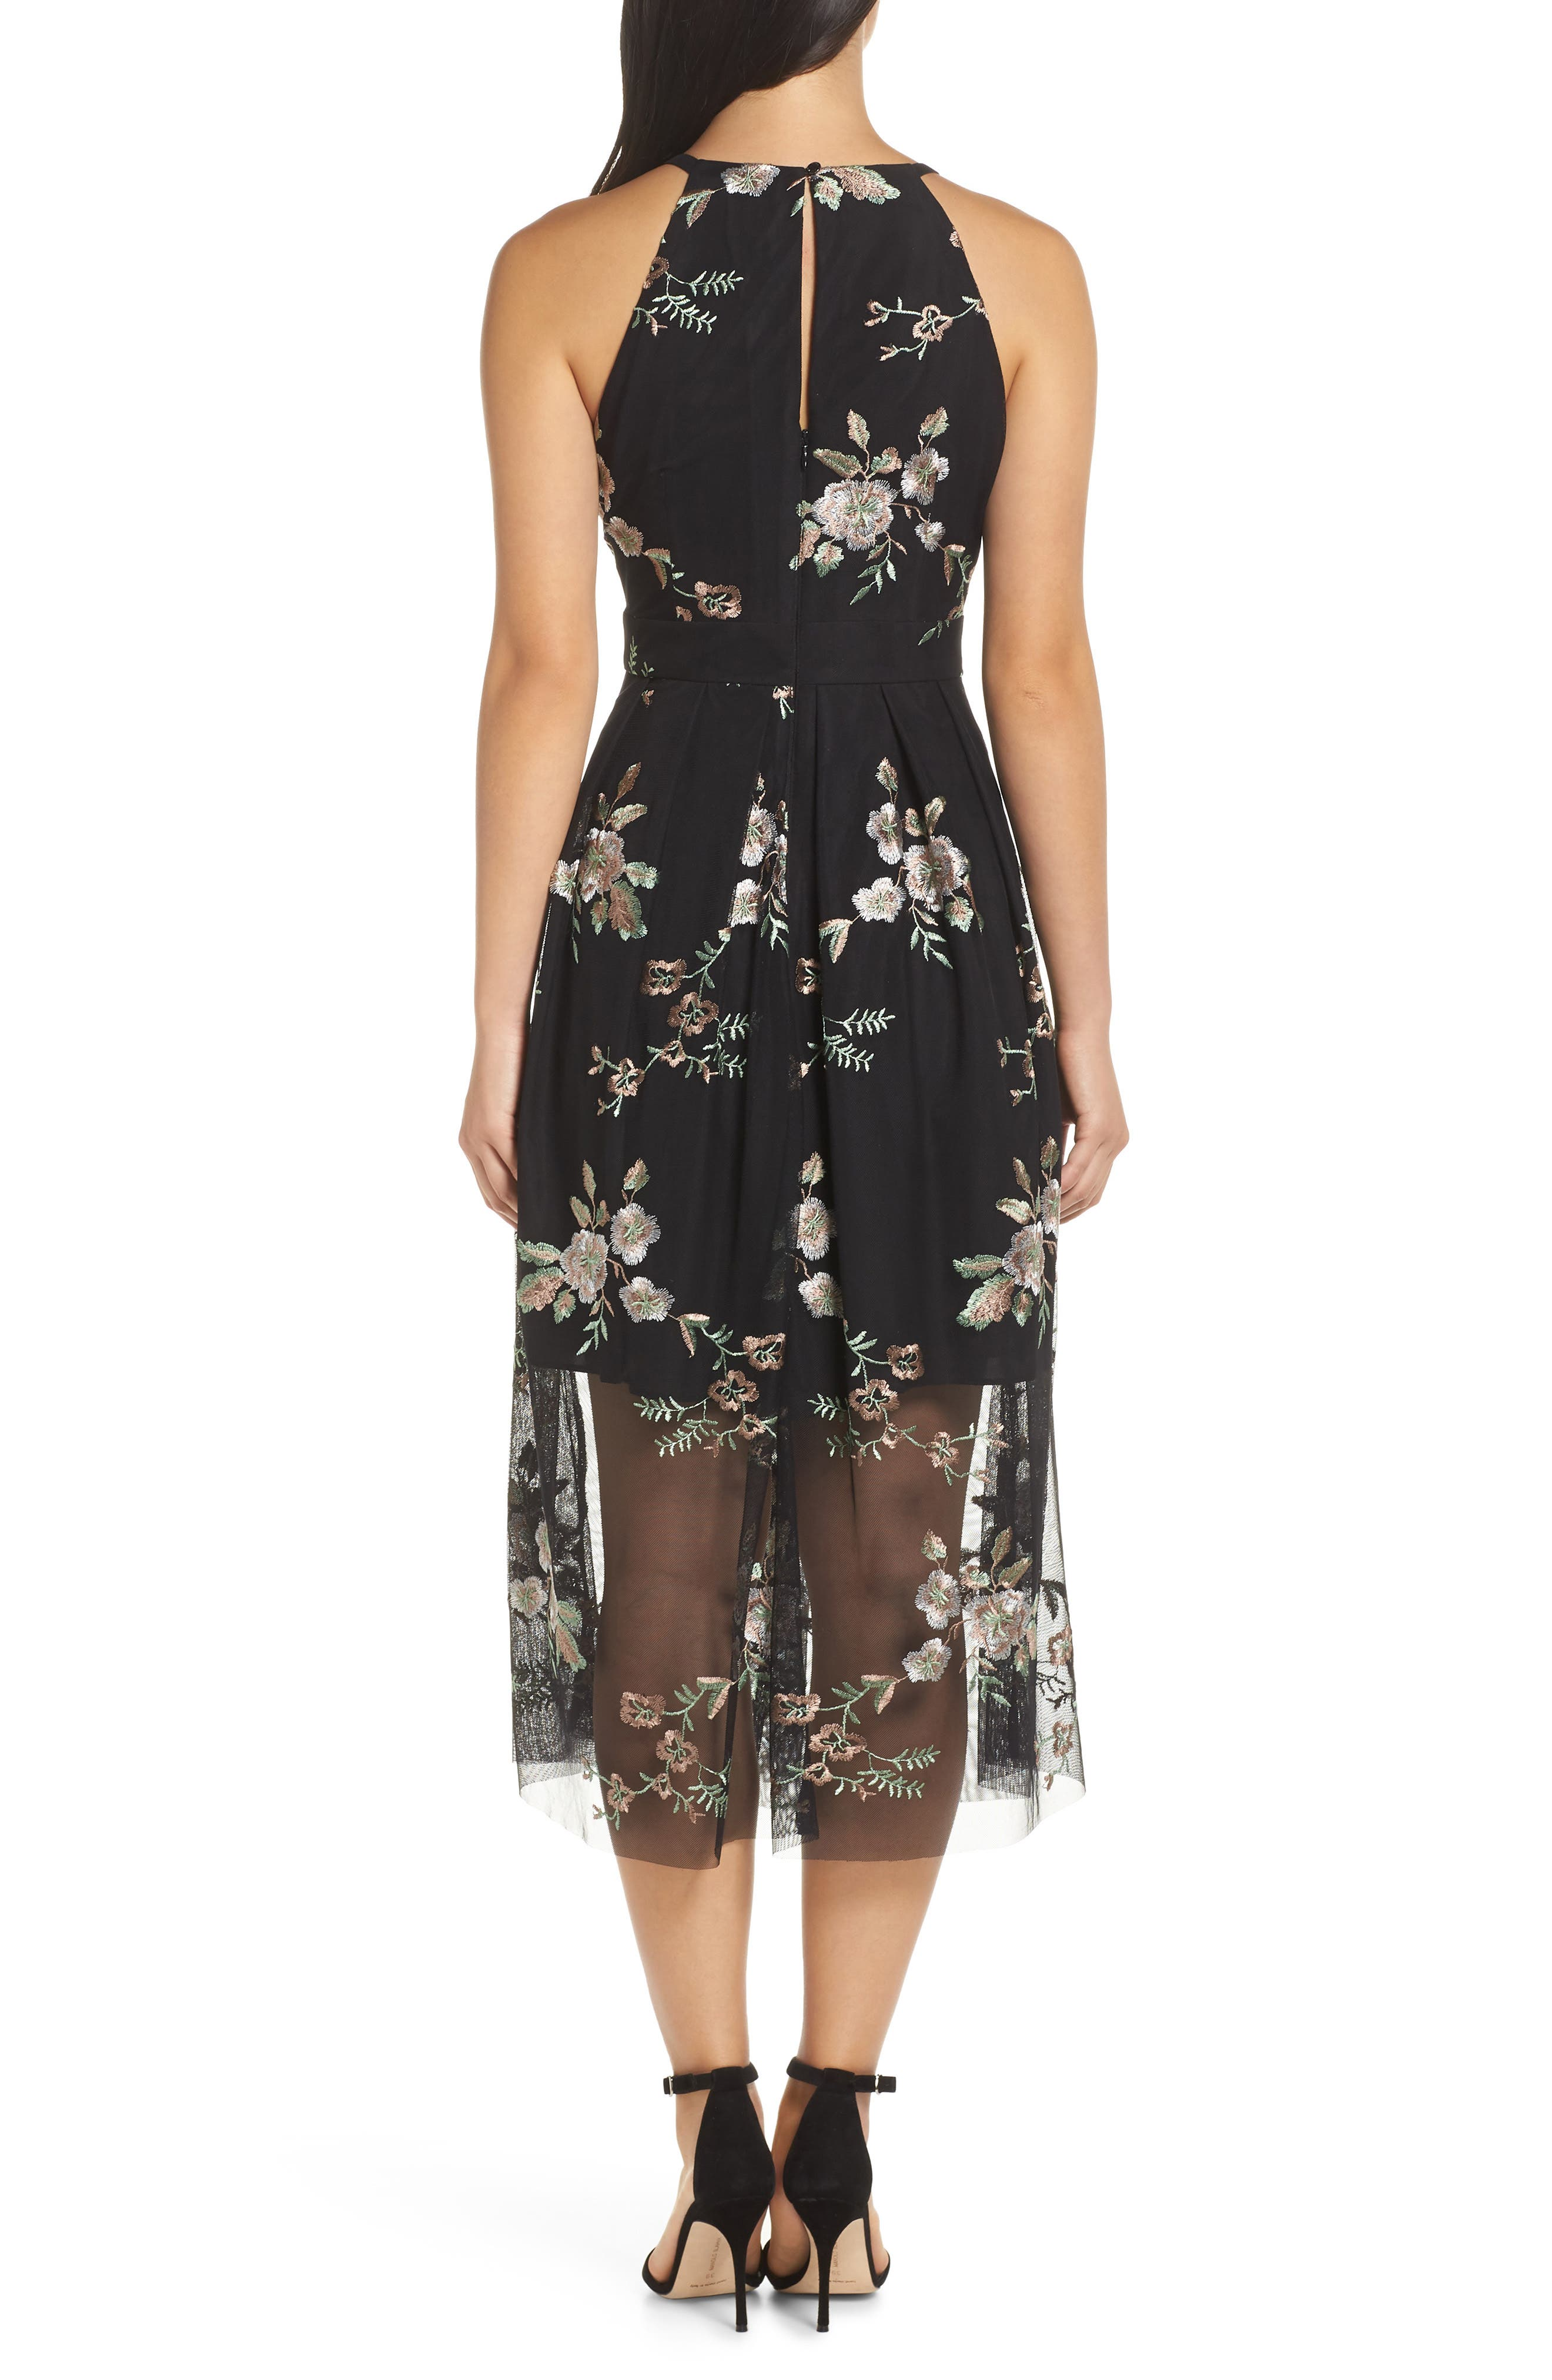 VINCE CAMUTO, Embroidered Mesh Midi Dress, Alternate thumbnail 2, color, 019